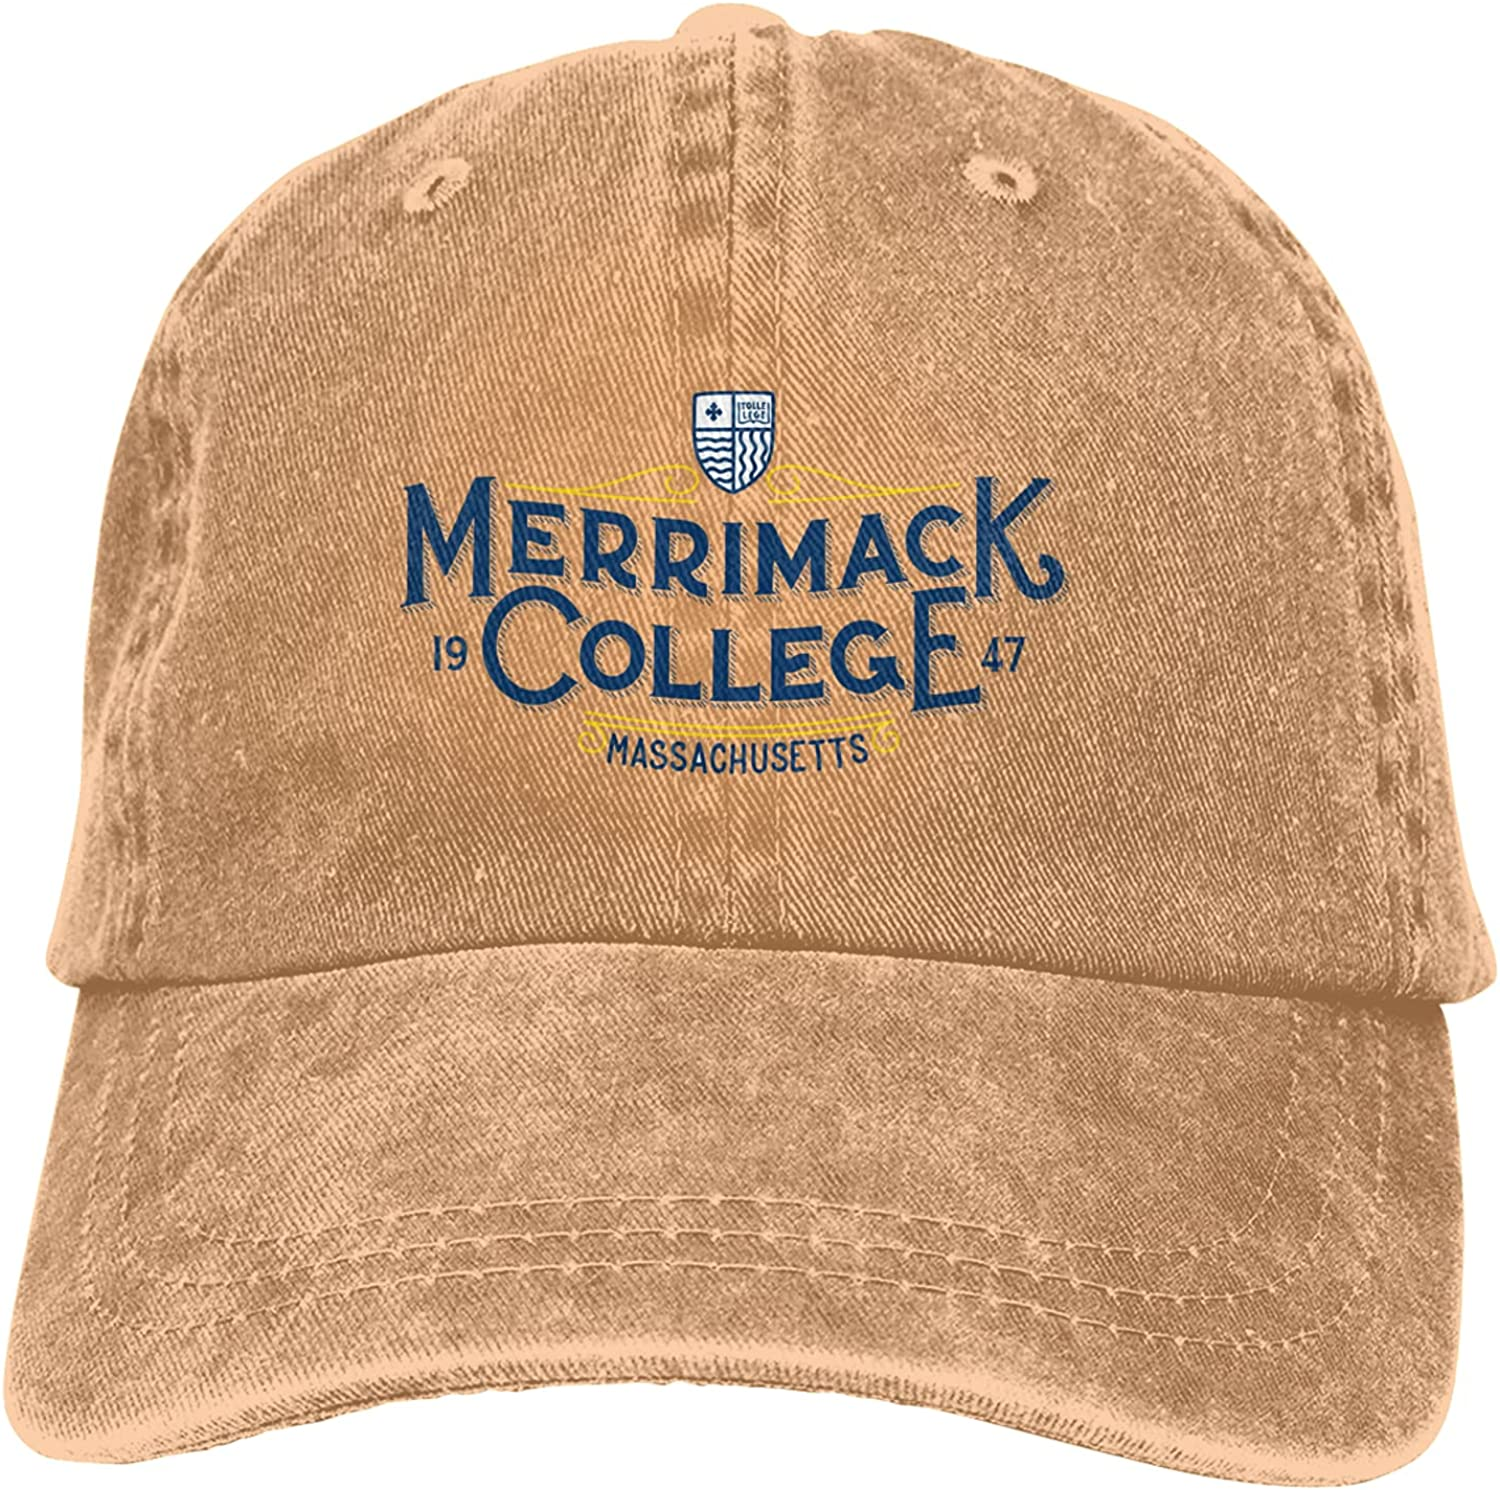 Yund Free shipping New Merrimack All items free shipping College1 Cap Suitable Adjus Students. College for